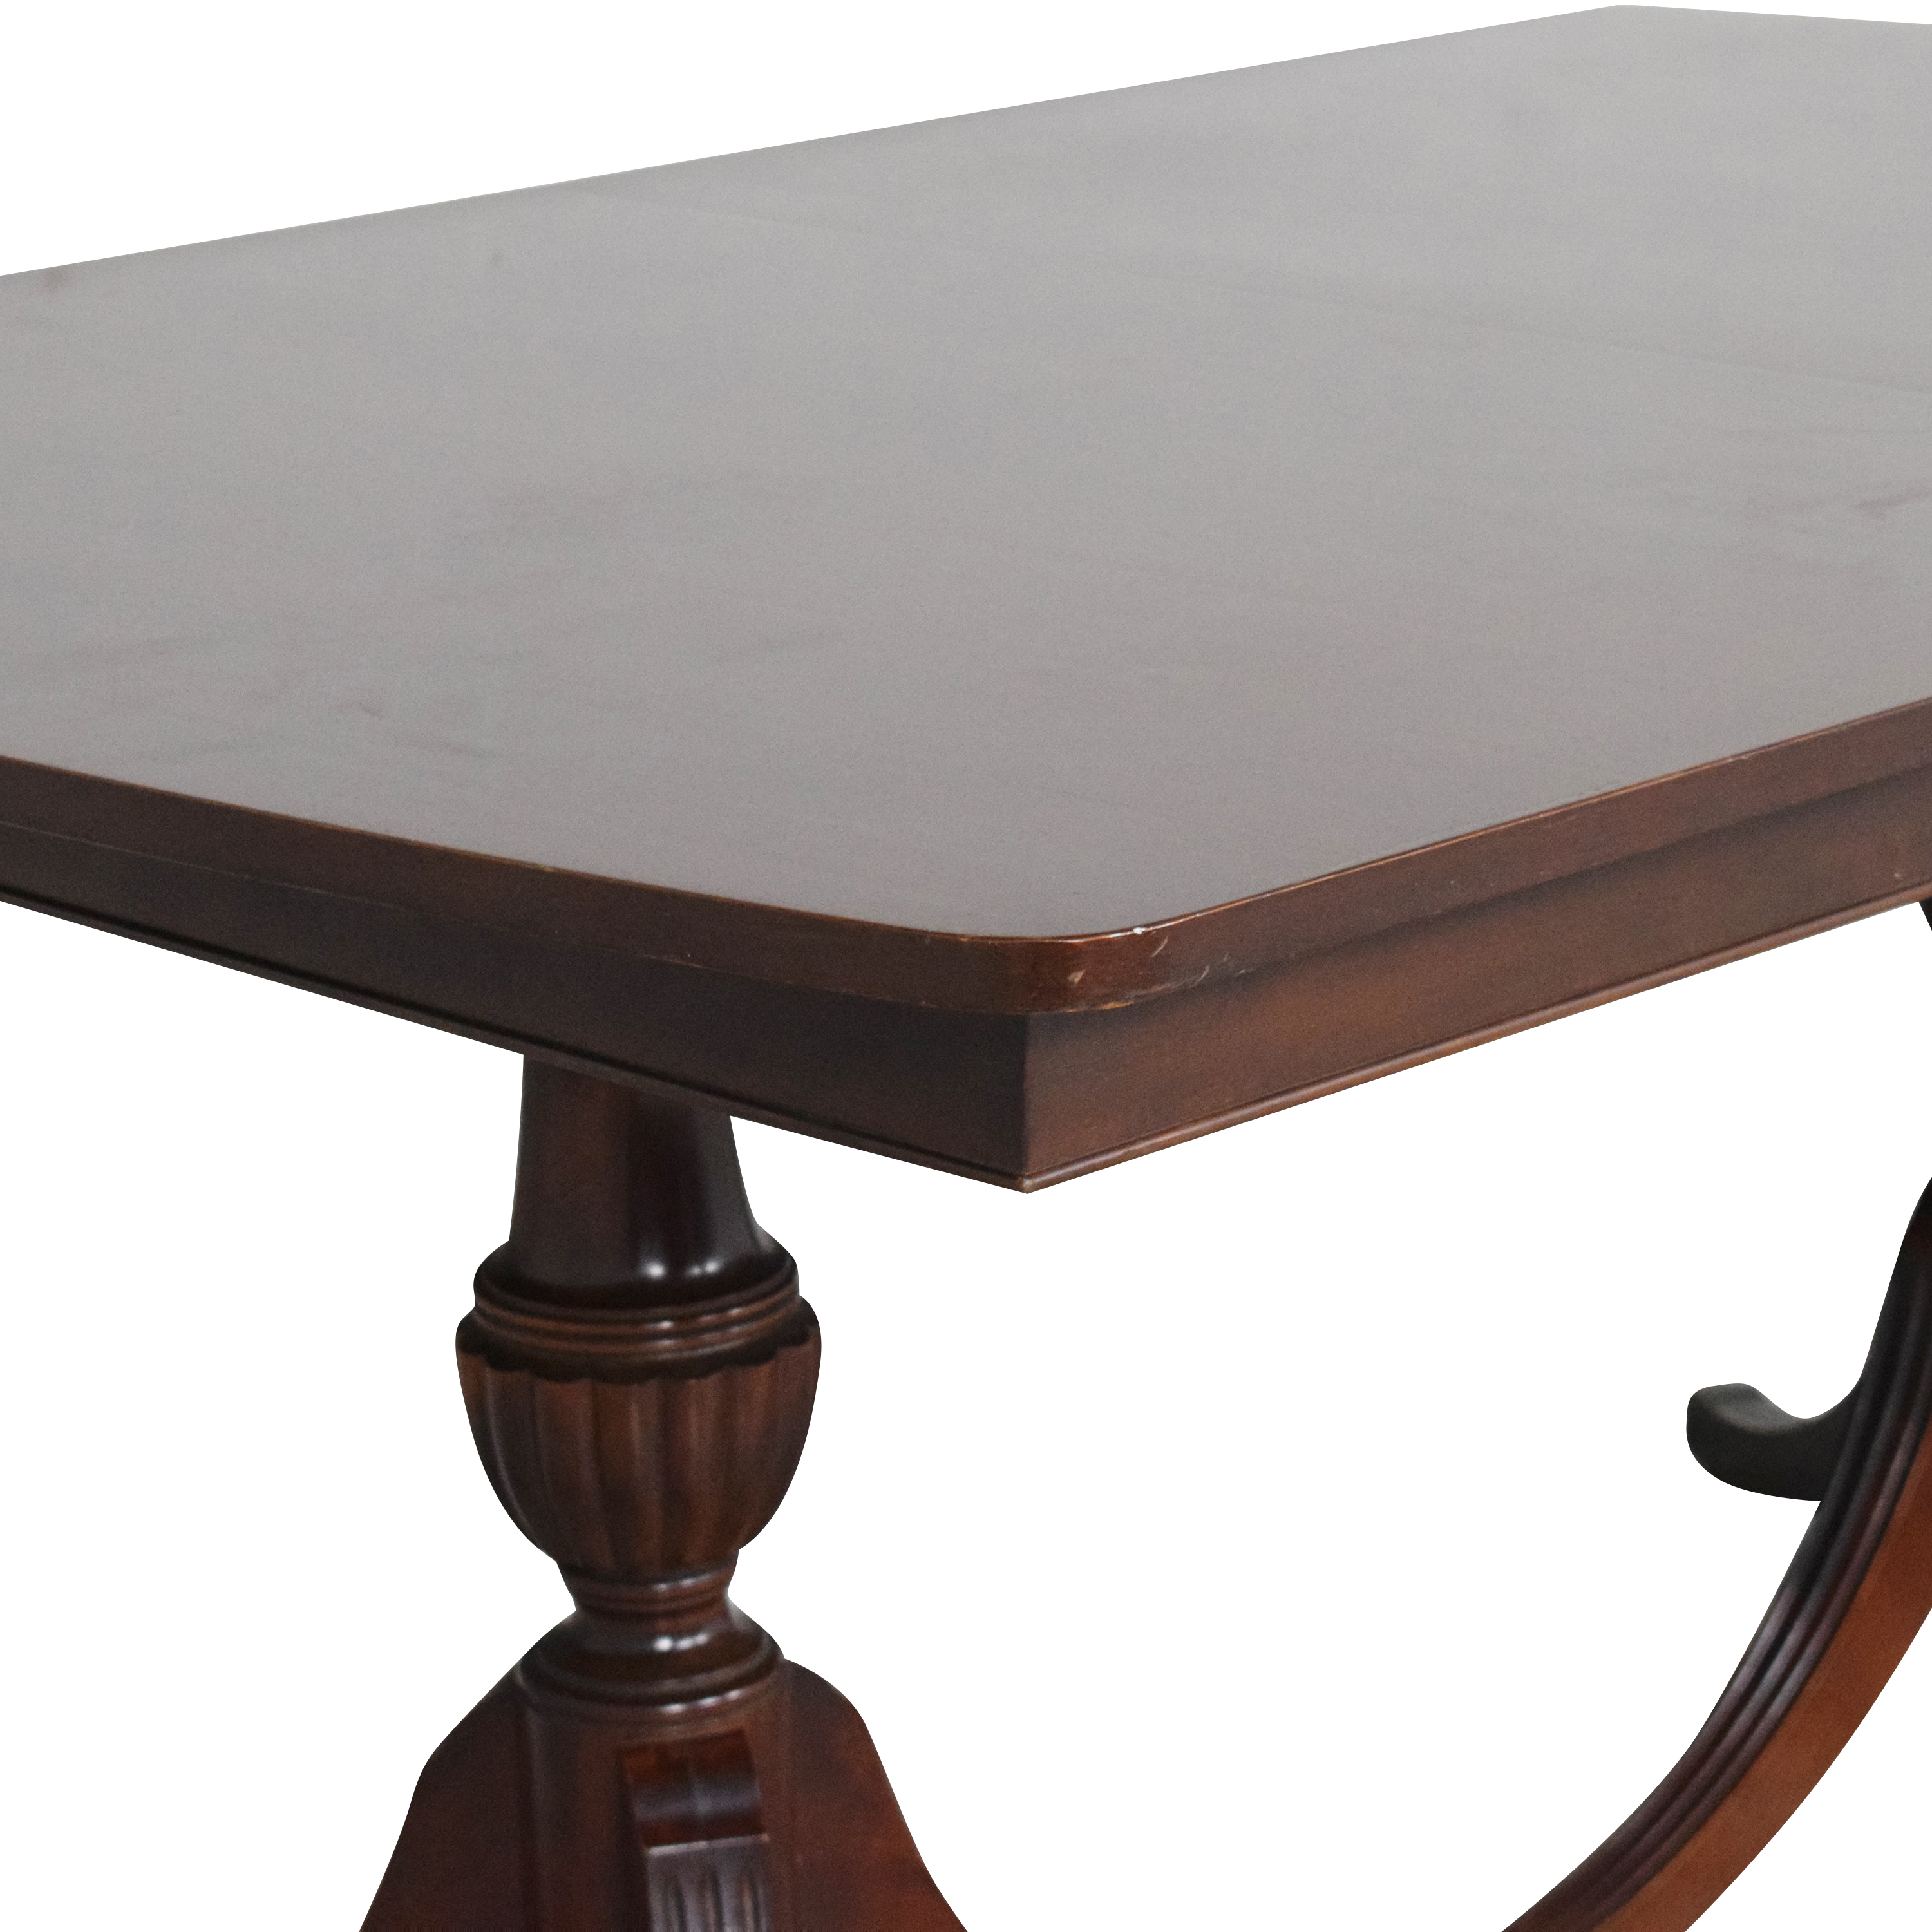 RWAY RWAY Double Pedestal Dining Table nyc